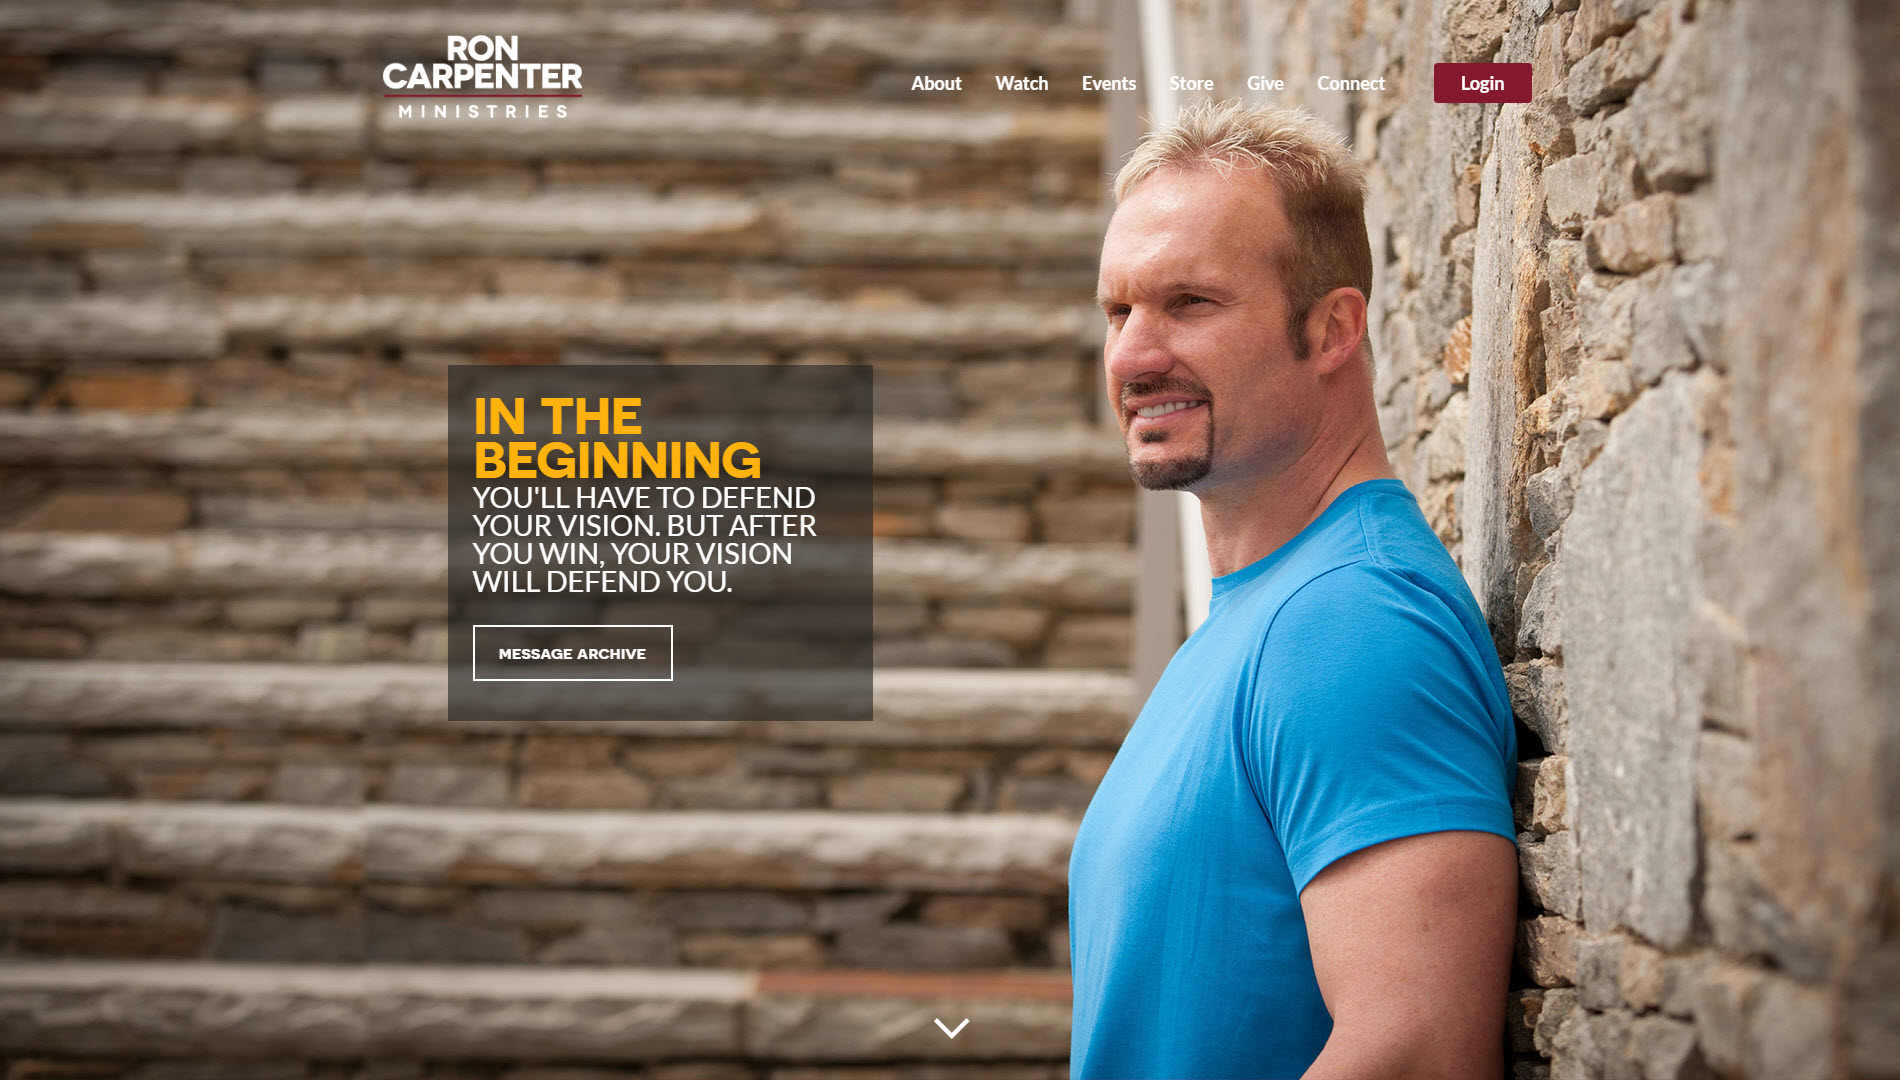 Ron Carpenter Ministries Homepage